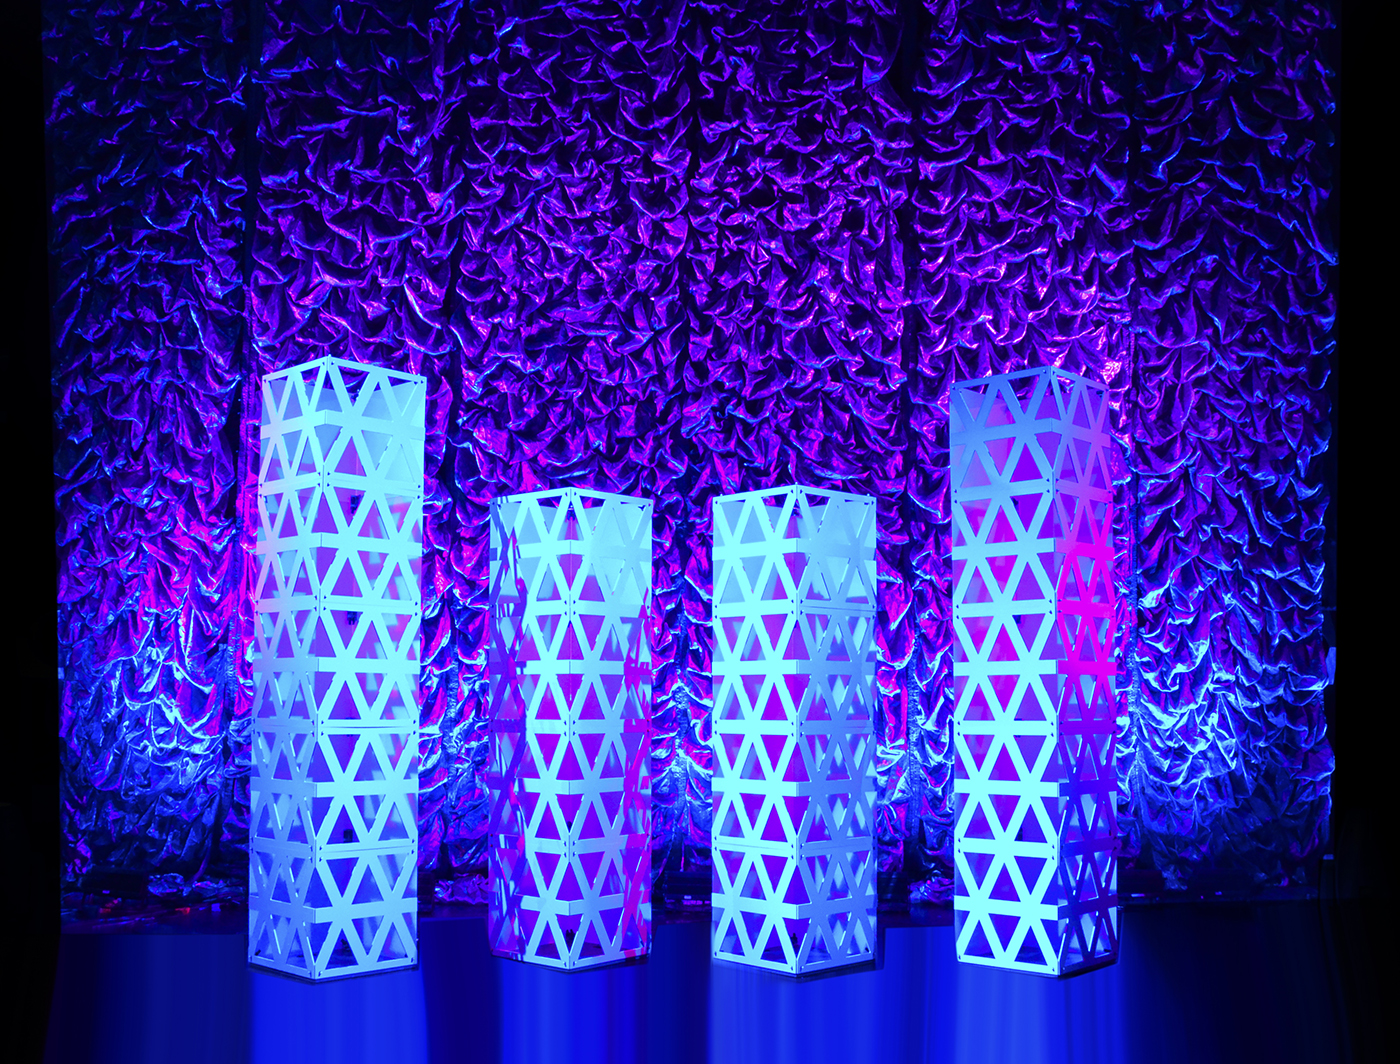 Triad SuperColumns add style and depth to this stage